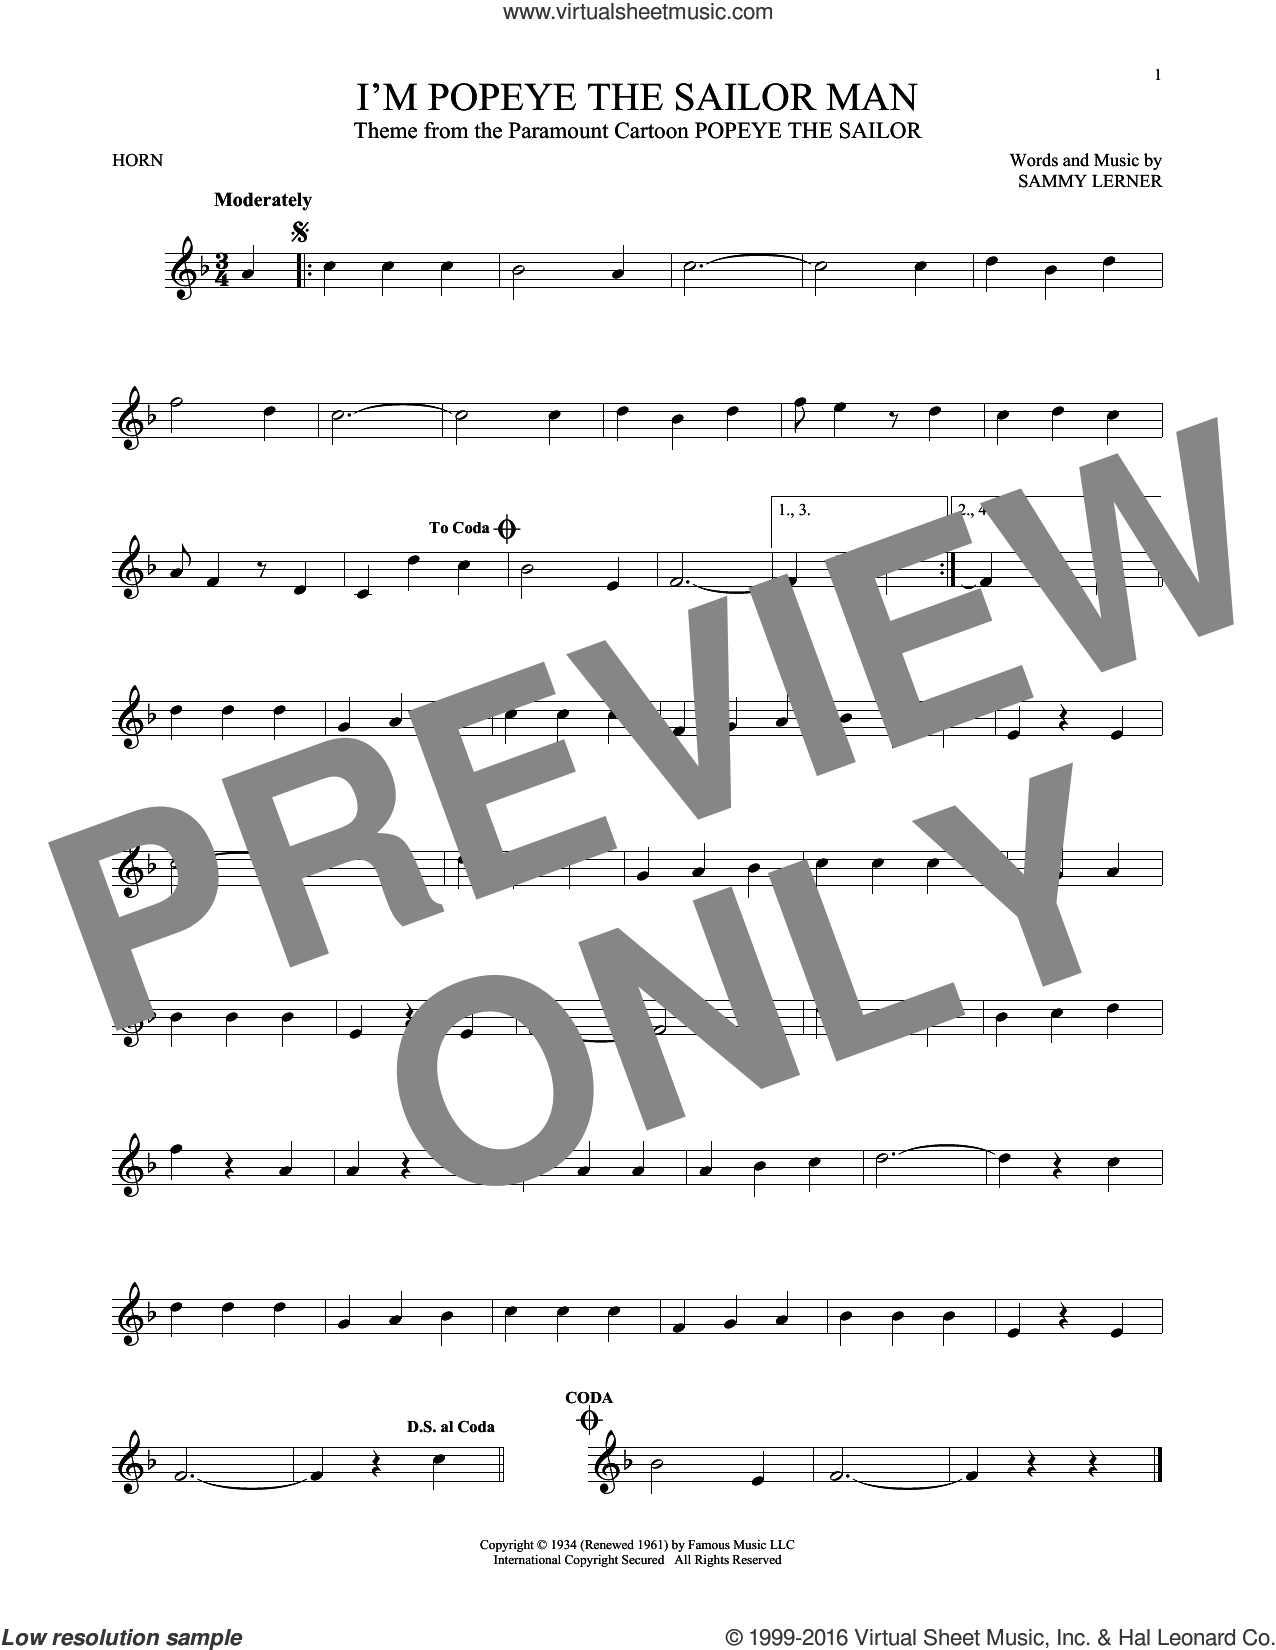 I'm Popeye The Sailor Man sheet music for horn solo by Sammy Lerner, intermediate skill level